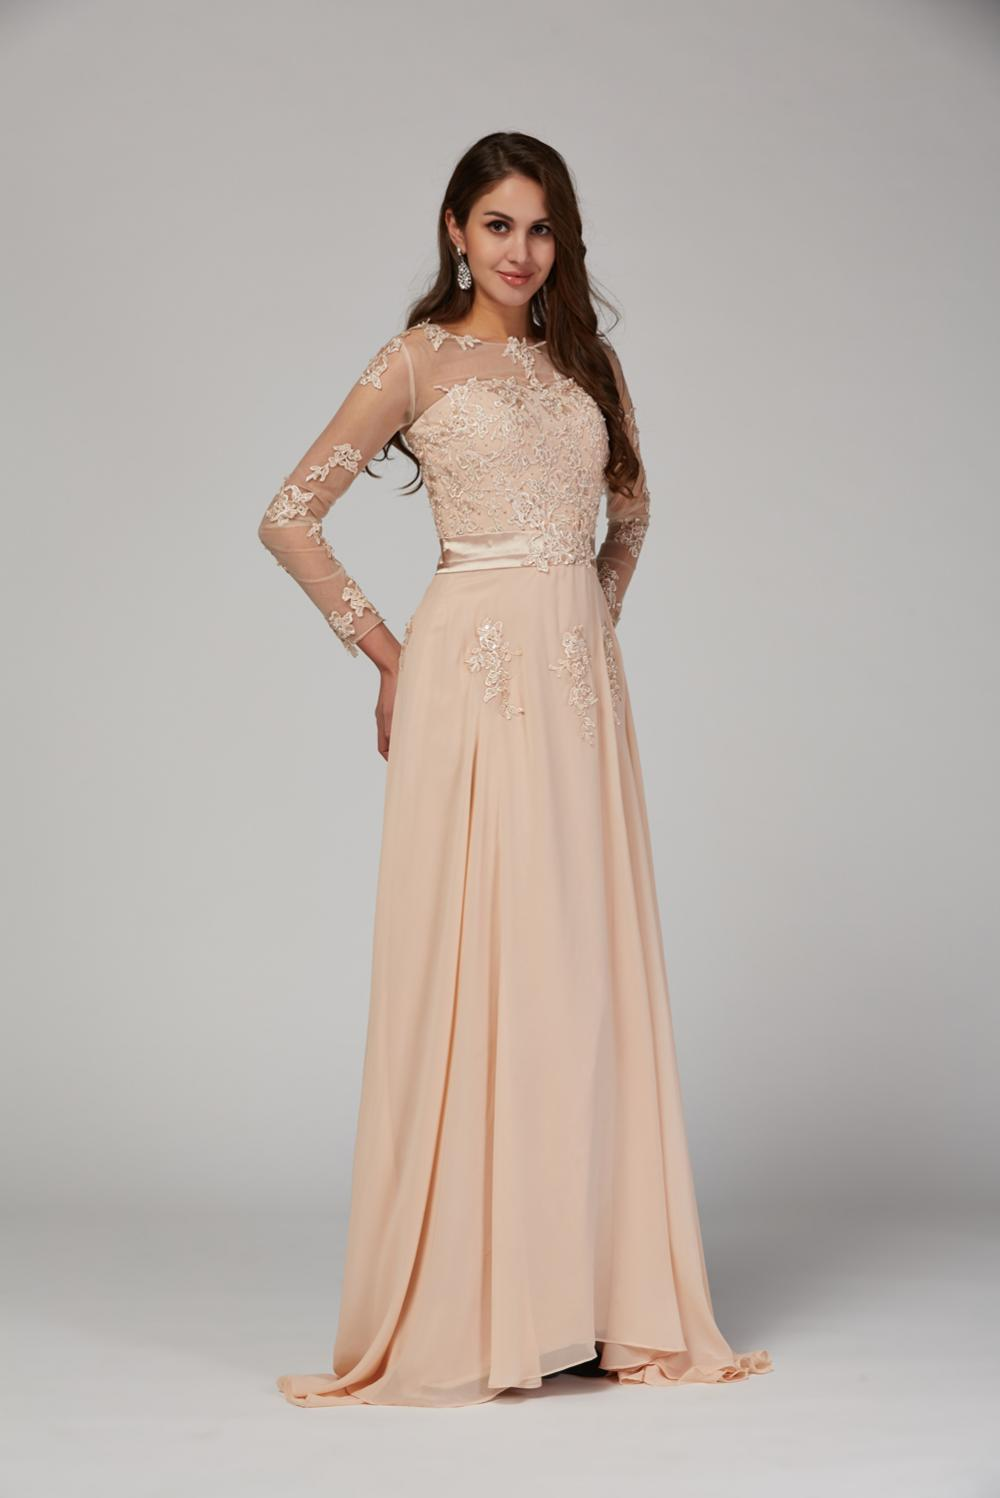 A-Line Jewel Neck Floor Length Chiffon Mother of the Bride Dresses with Applique